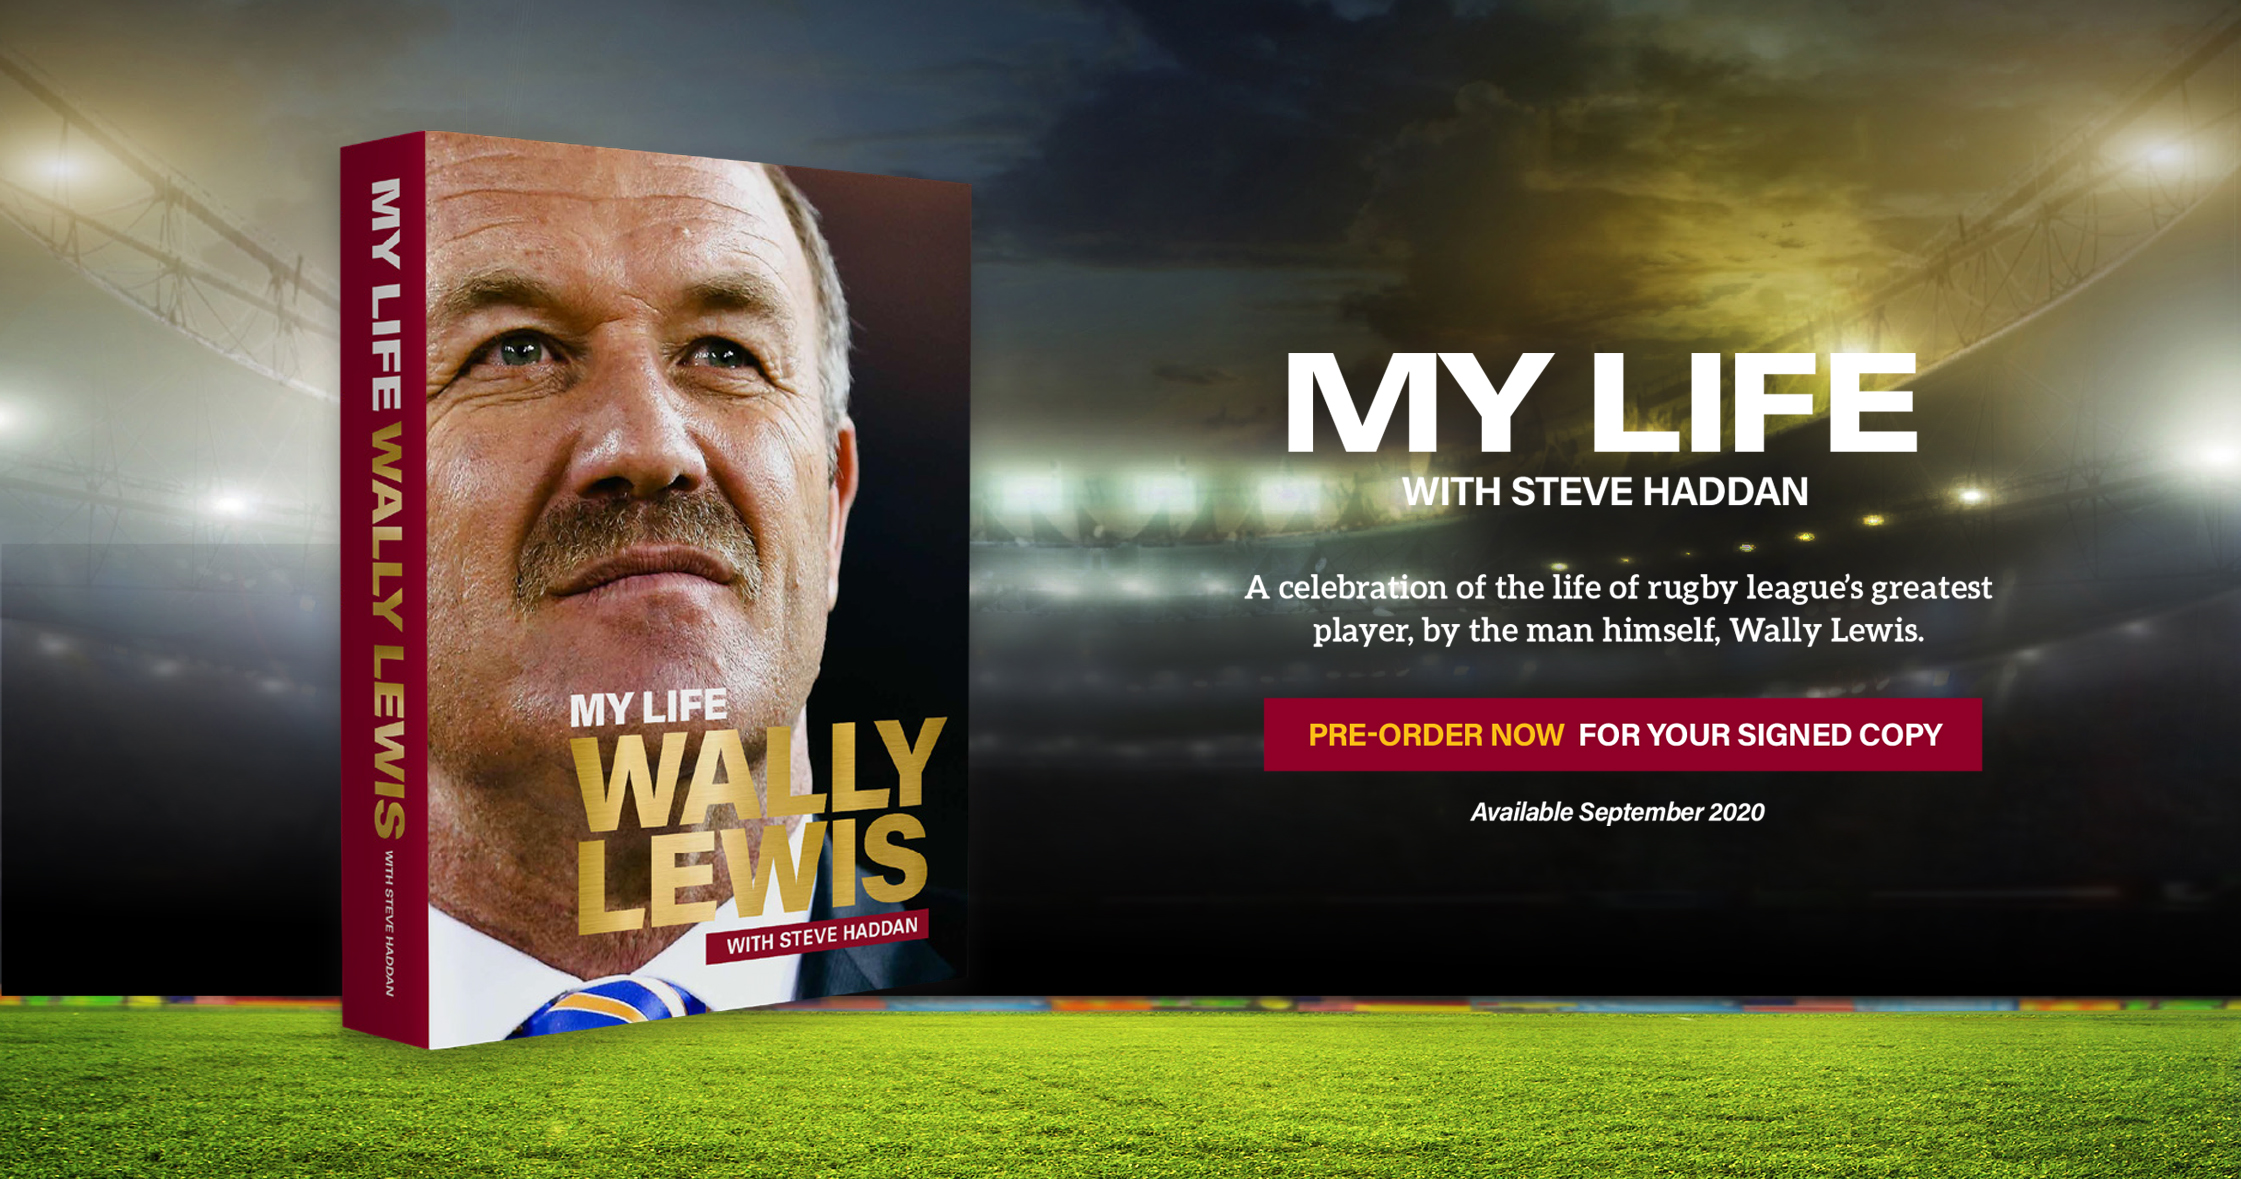 MY LIFE_WallyLewis_Banners_v4